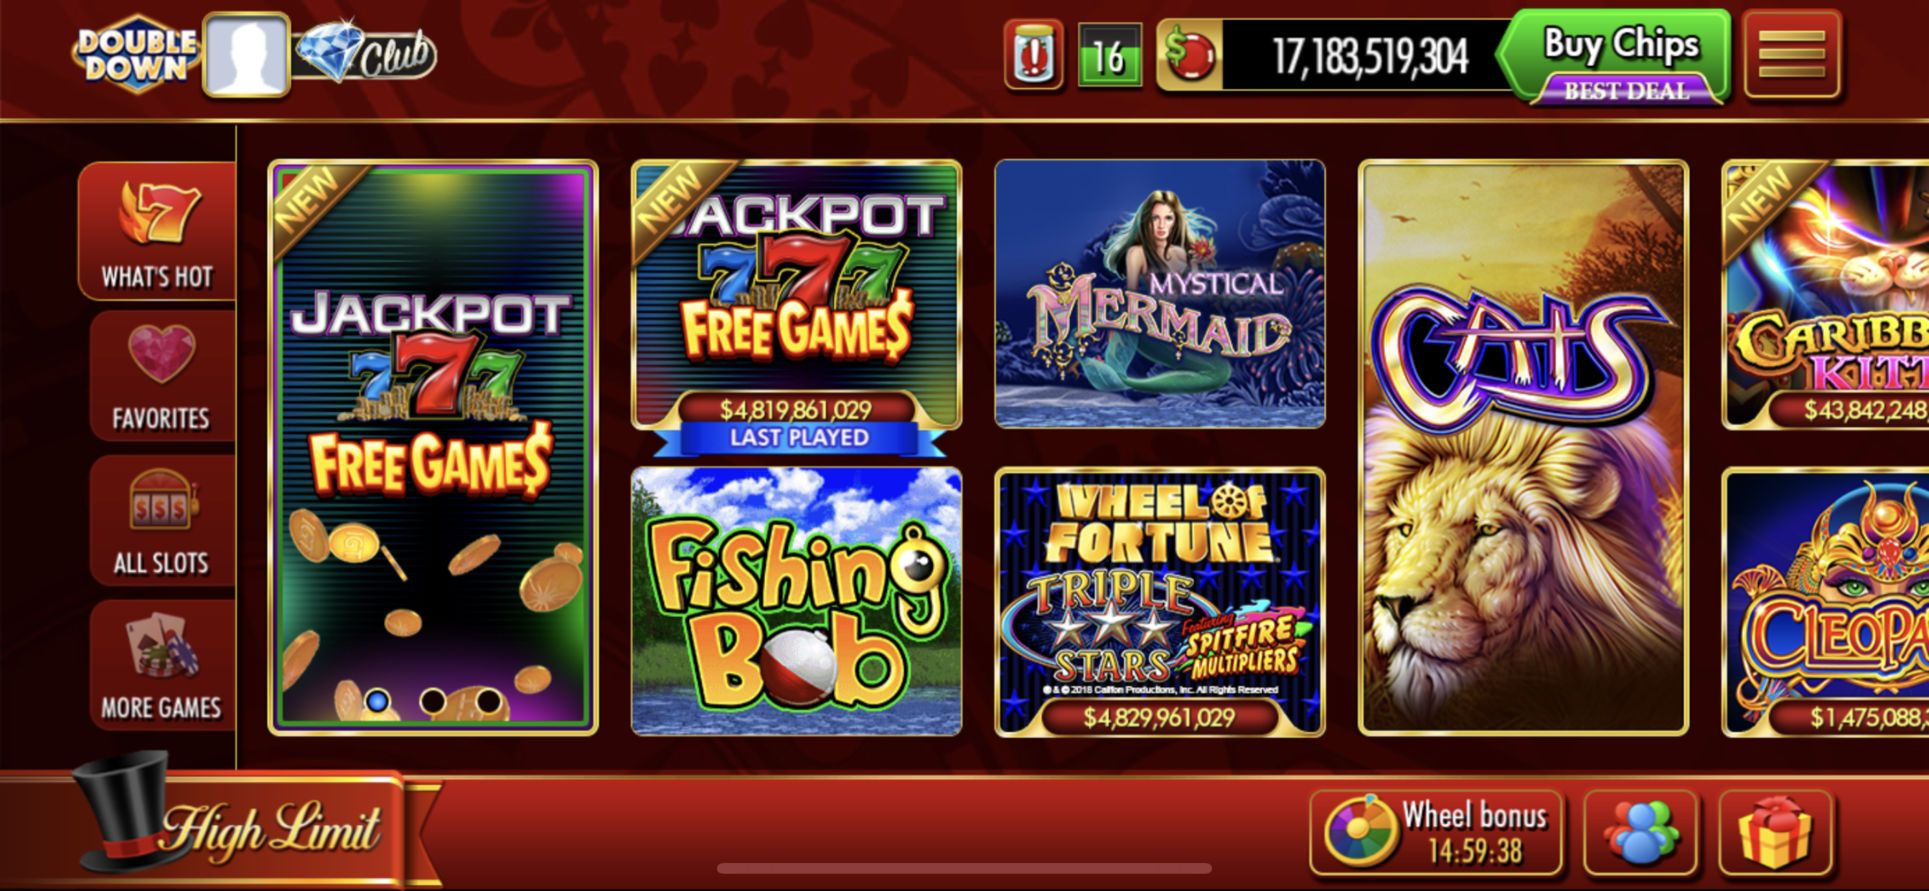 ‎DoubleDown Casino Slots & More on the App Store Casino